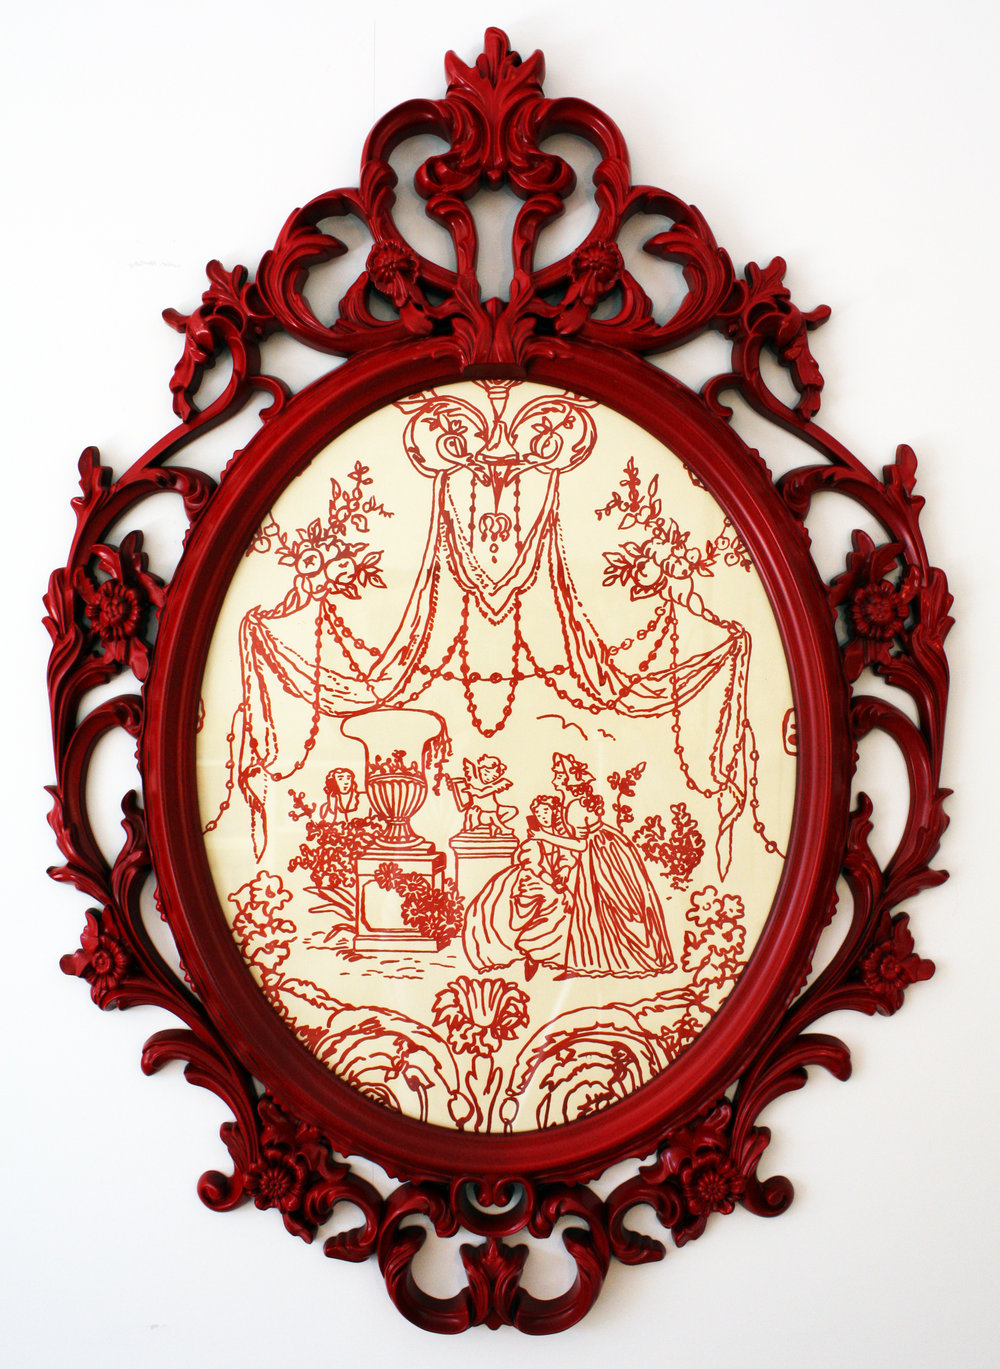 The Rite of Sext (Red) © 2014 Framed Silkscreen print 34 x 26""